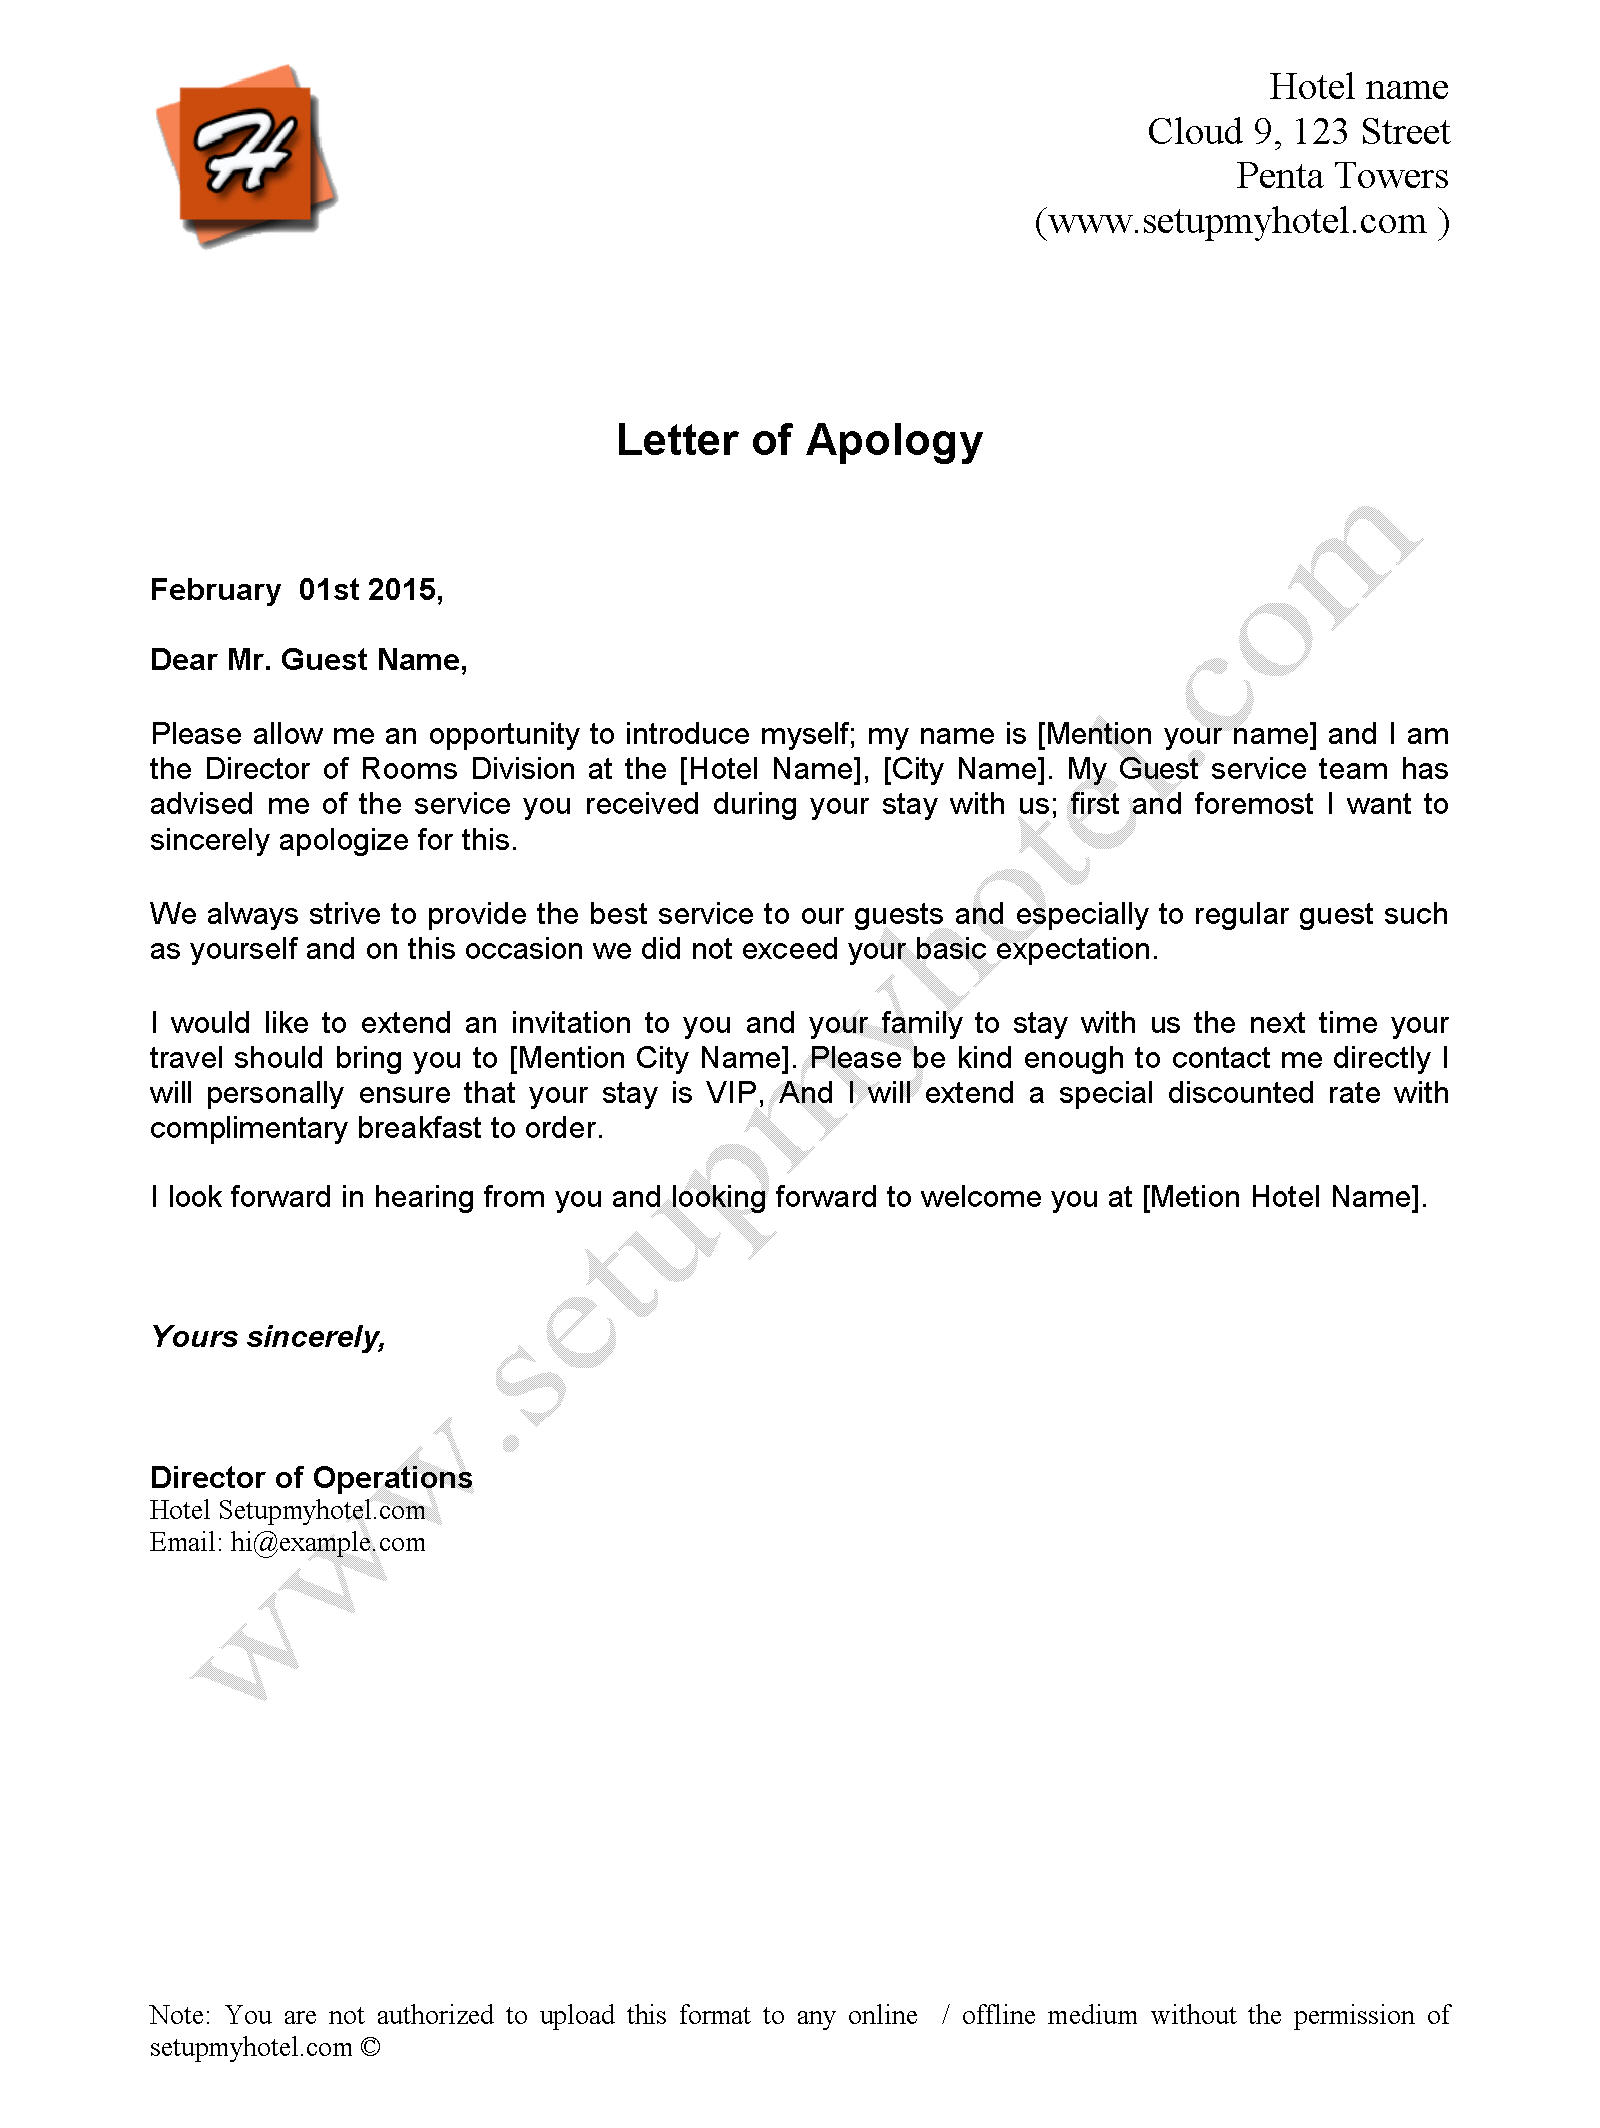 Complaint service letter apology letter sample send to hotel apology letter sample send to hotel guests apology letter to hotel guest thecheapjerseys Image collections